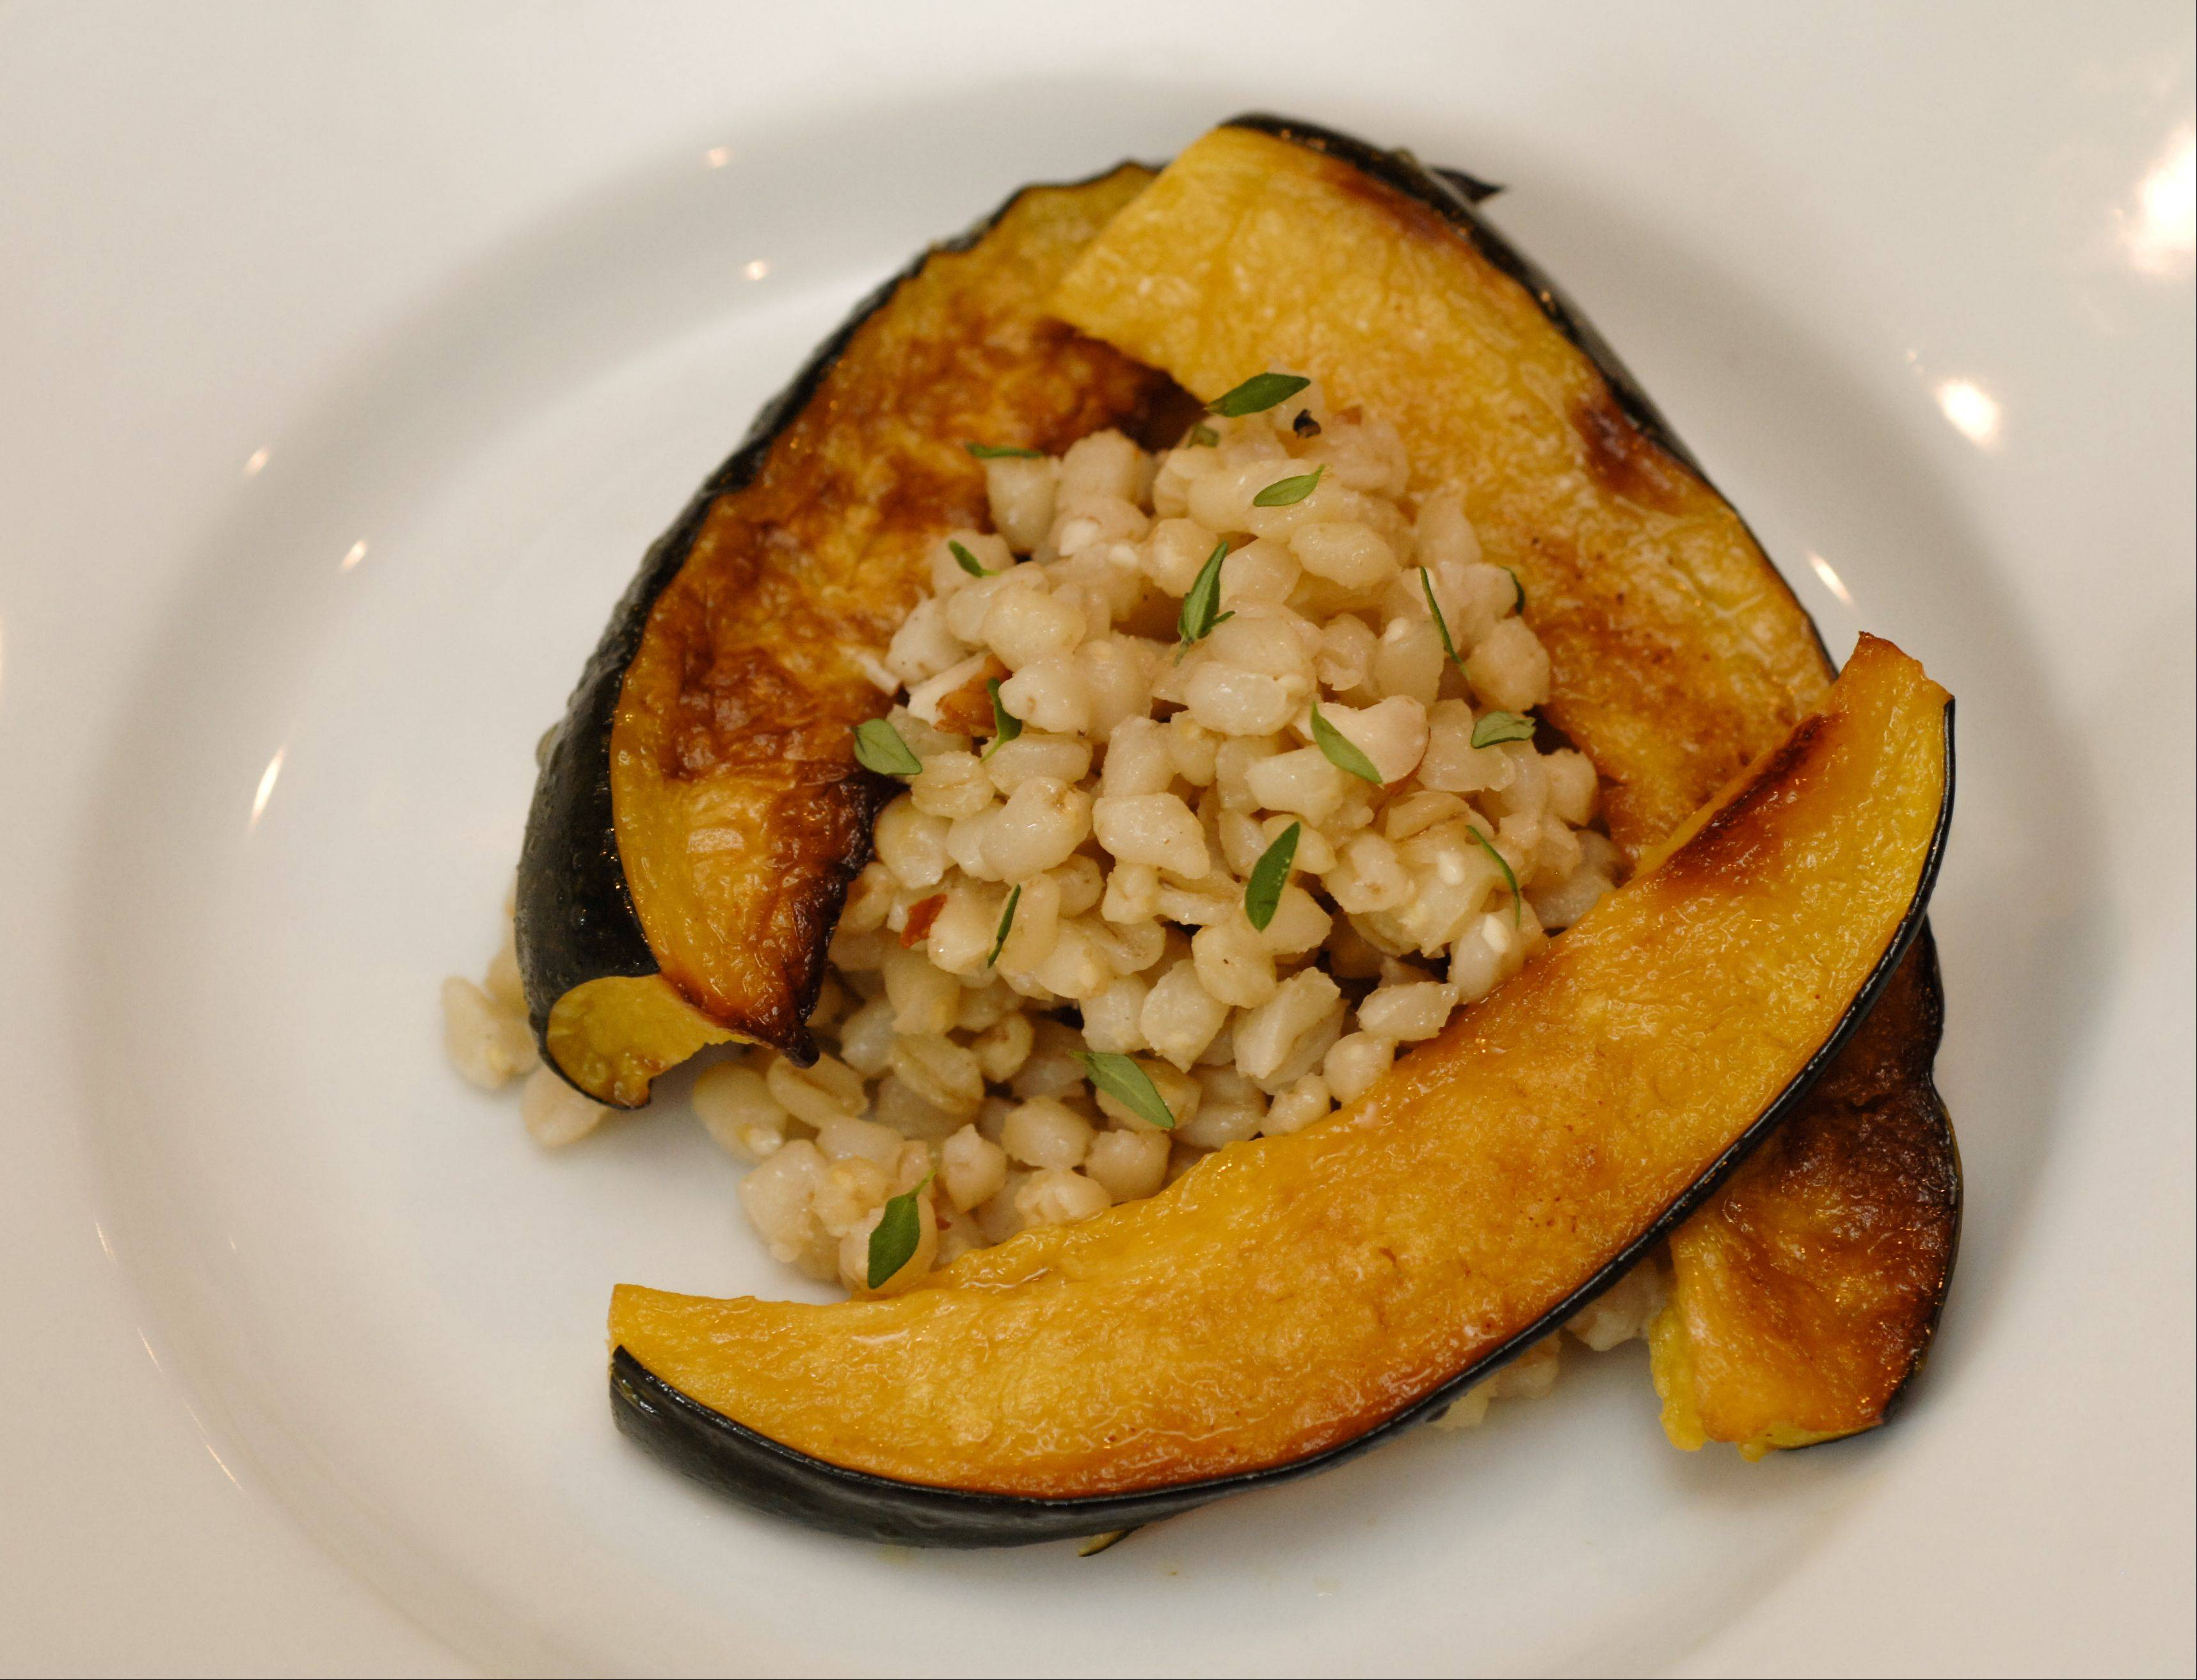 Elliott Papineau�s acorn squash. Papineau is part of the Daily Herald Cook of the Week Challenge.